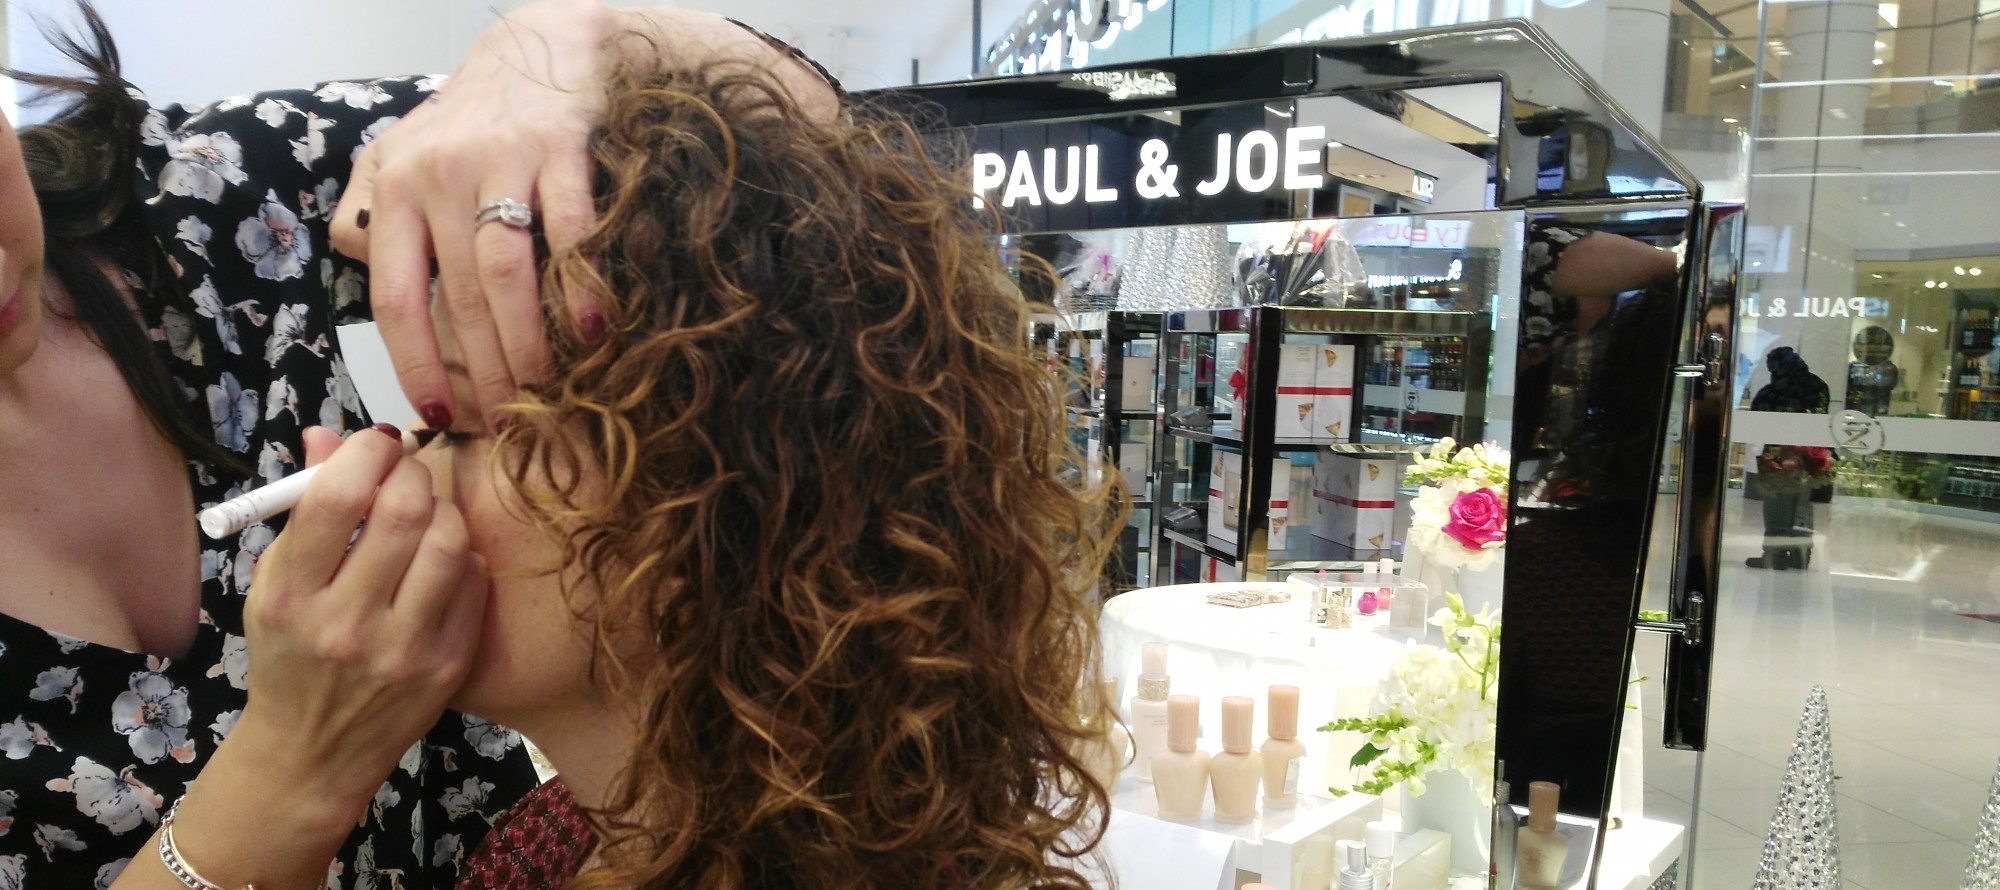 BeautyBOUTIQUE got a makeover, and so did we